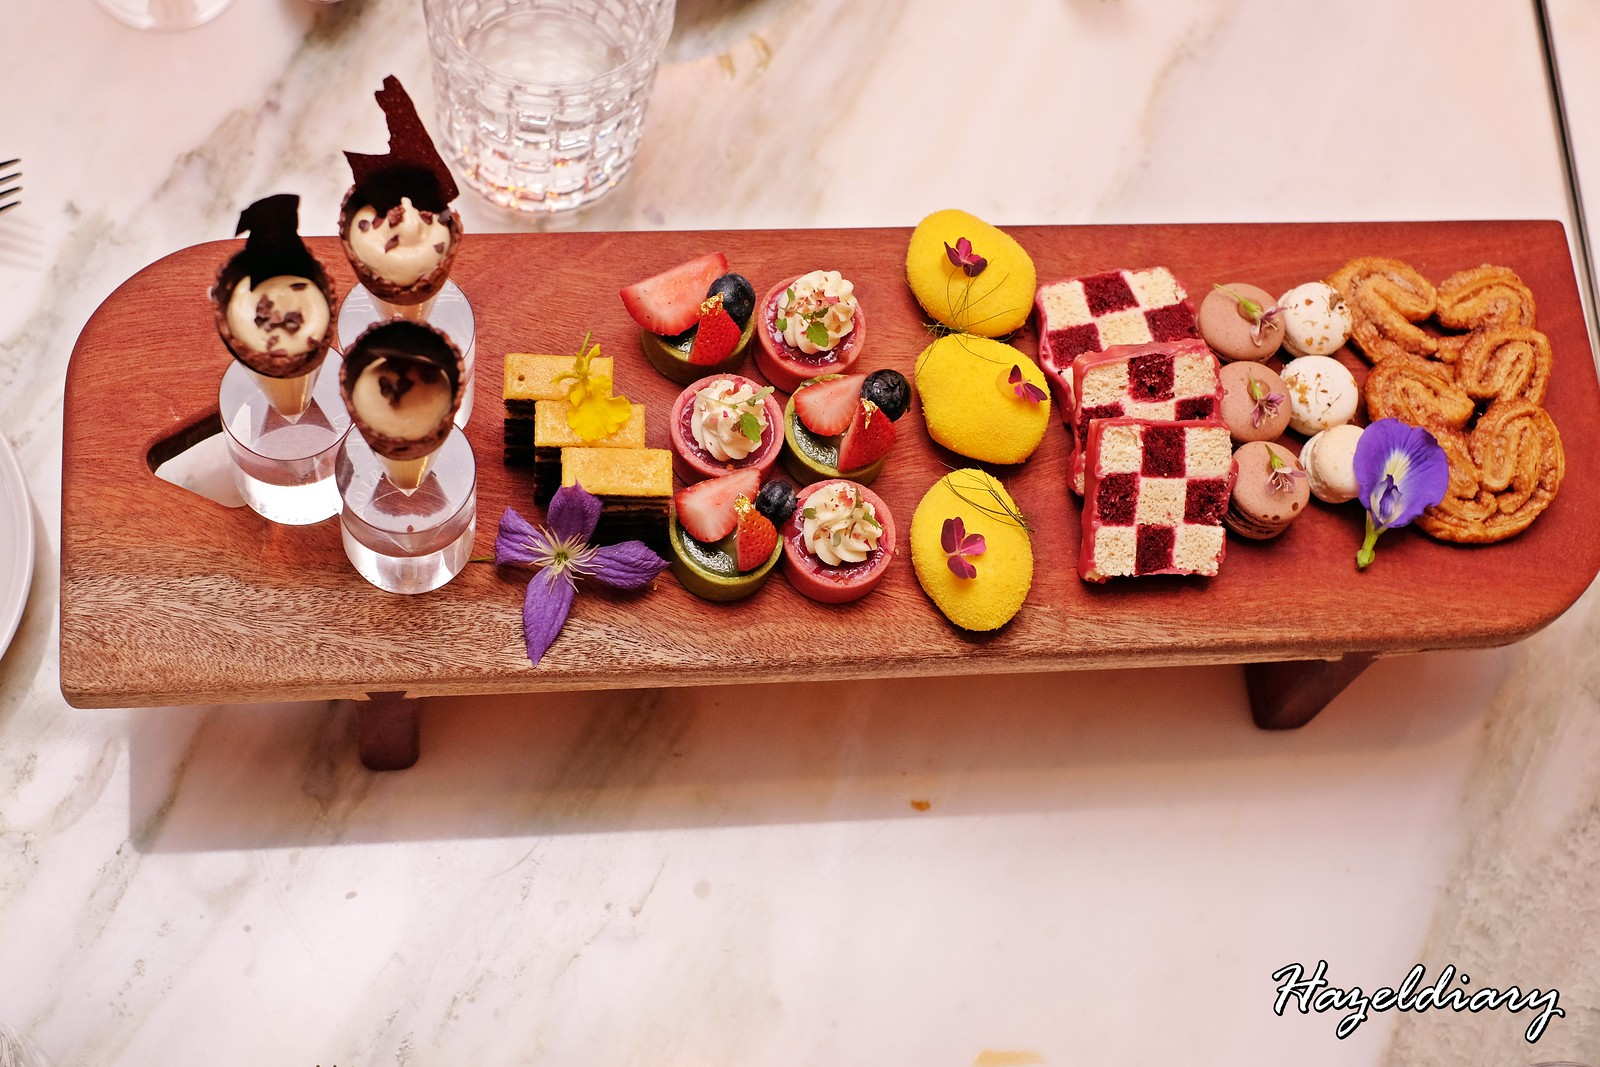 six Senses Brasserie -The Weekender's Brasserie Brunch-Desserts